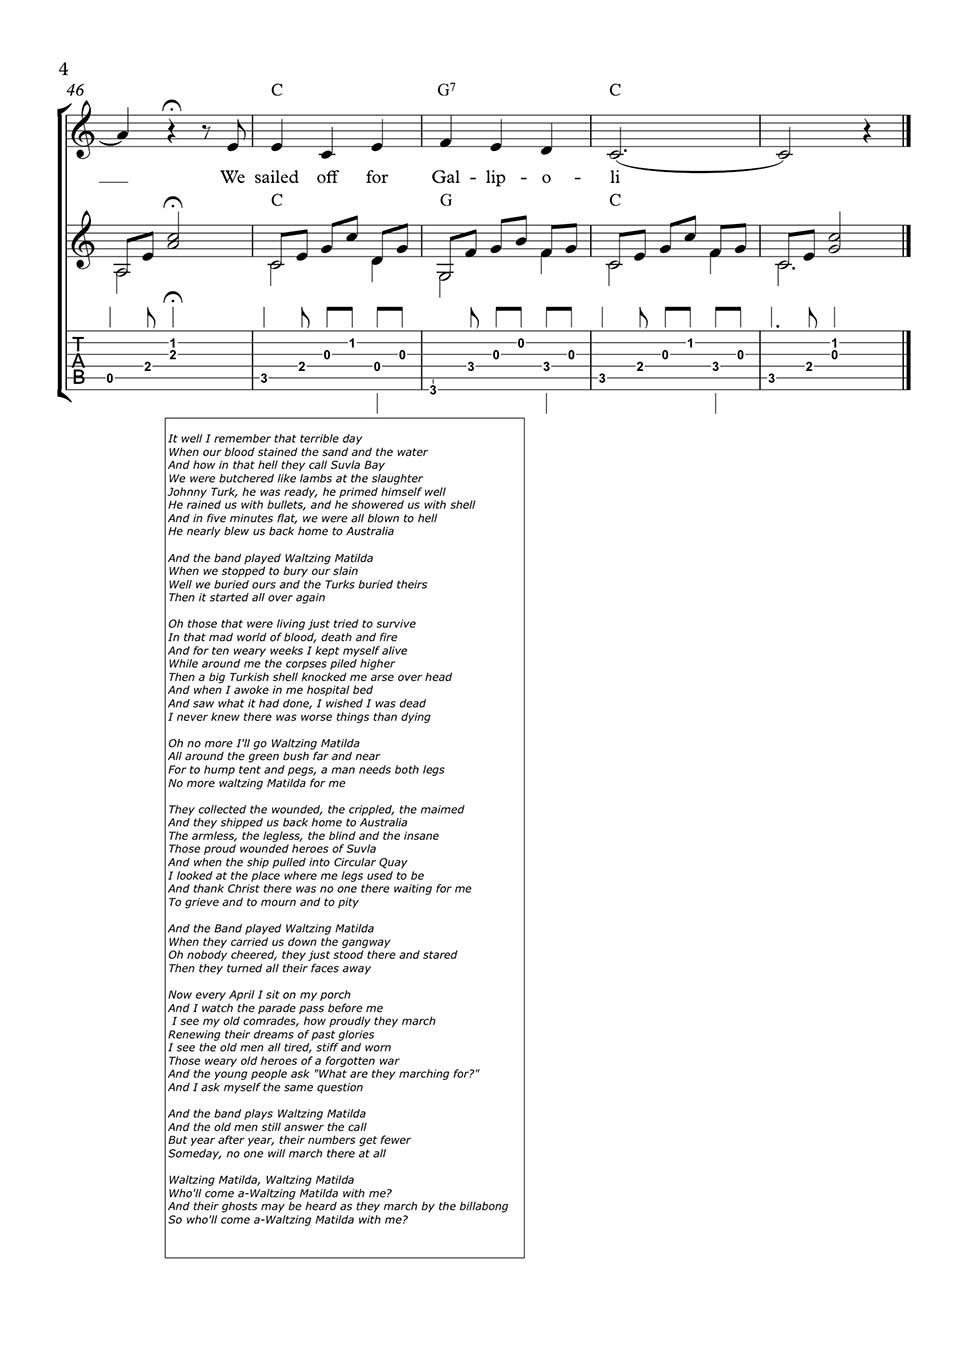 And the band played waltzing matilde by eric bogle fingerstyle download pdf file hexwebz Images